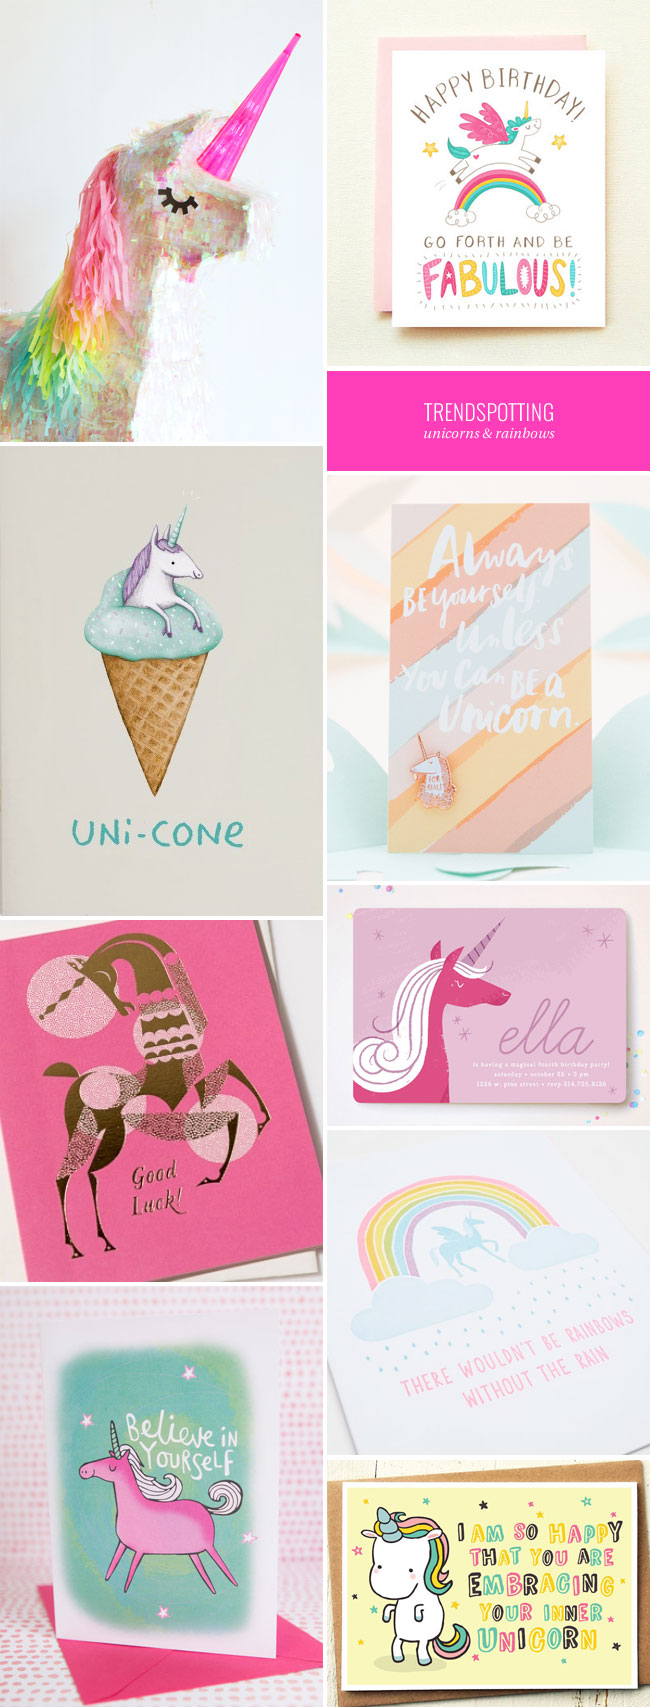 http://i0.wp.com/papercrave.com/wp-content/uploads/2016/03/trendspotting-stationery-trends-unicorns-rainbows.jpg?resize=650%2C1707